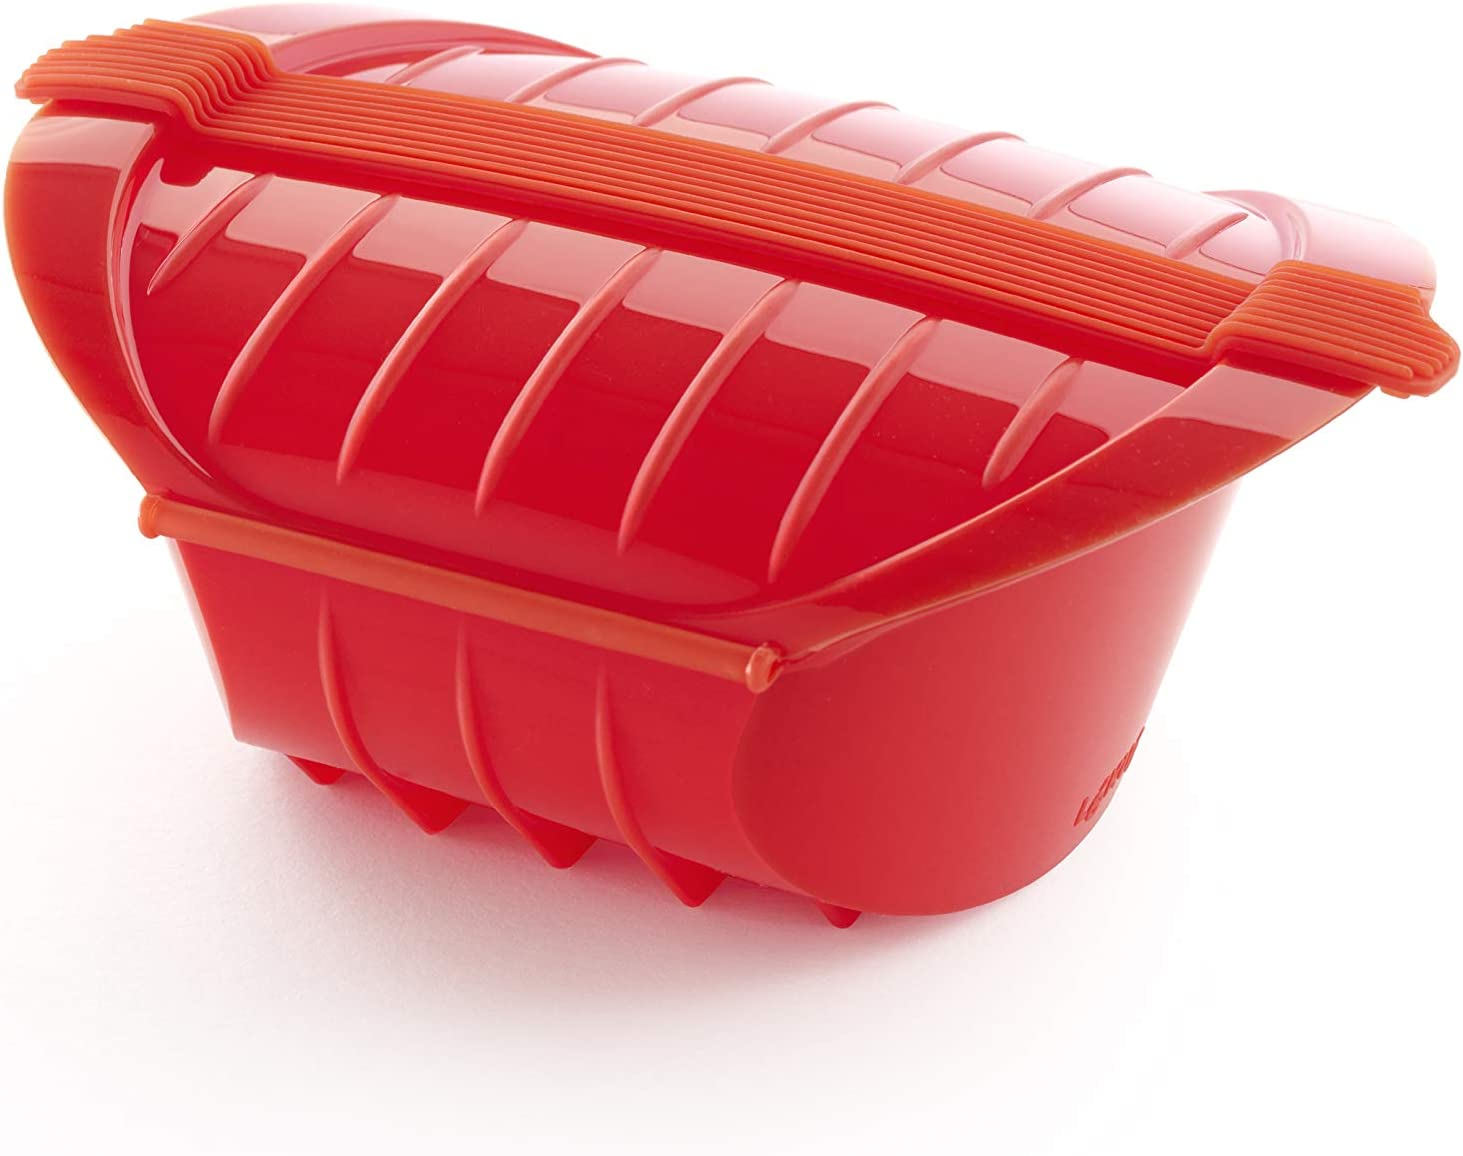 Amazon.com: Lekue Small Ogya Sauce Pan, Red: Kitchen & Dining